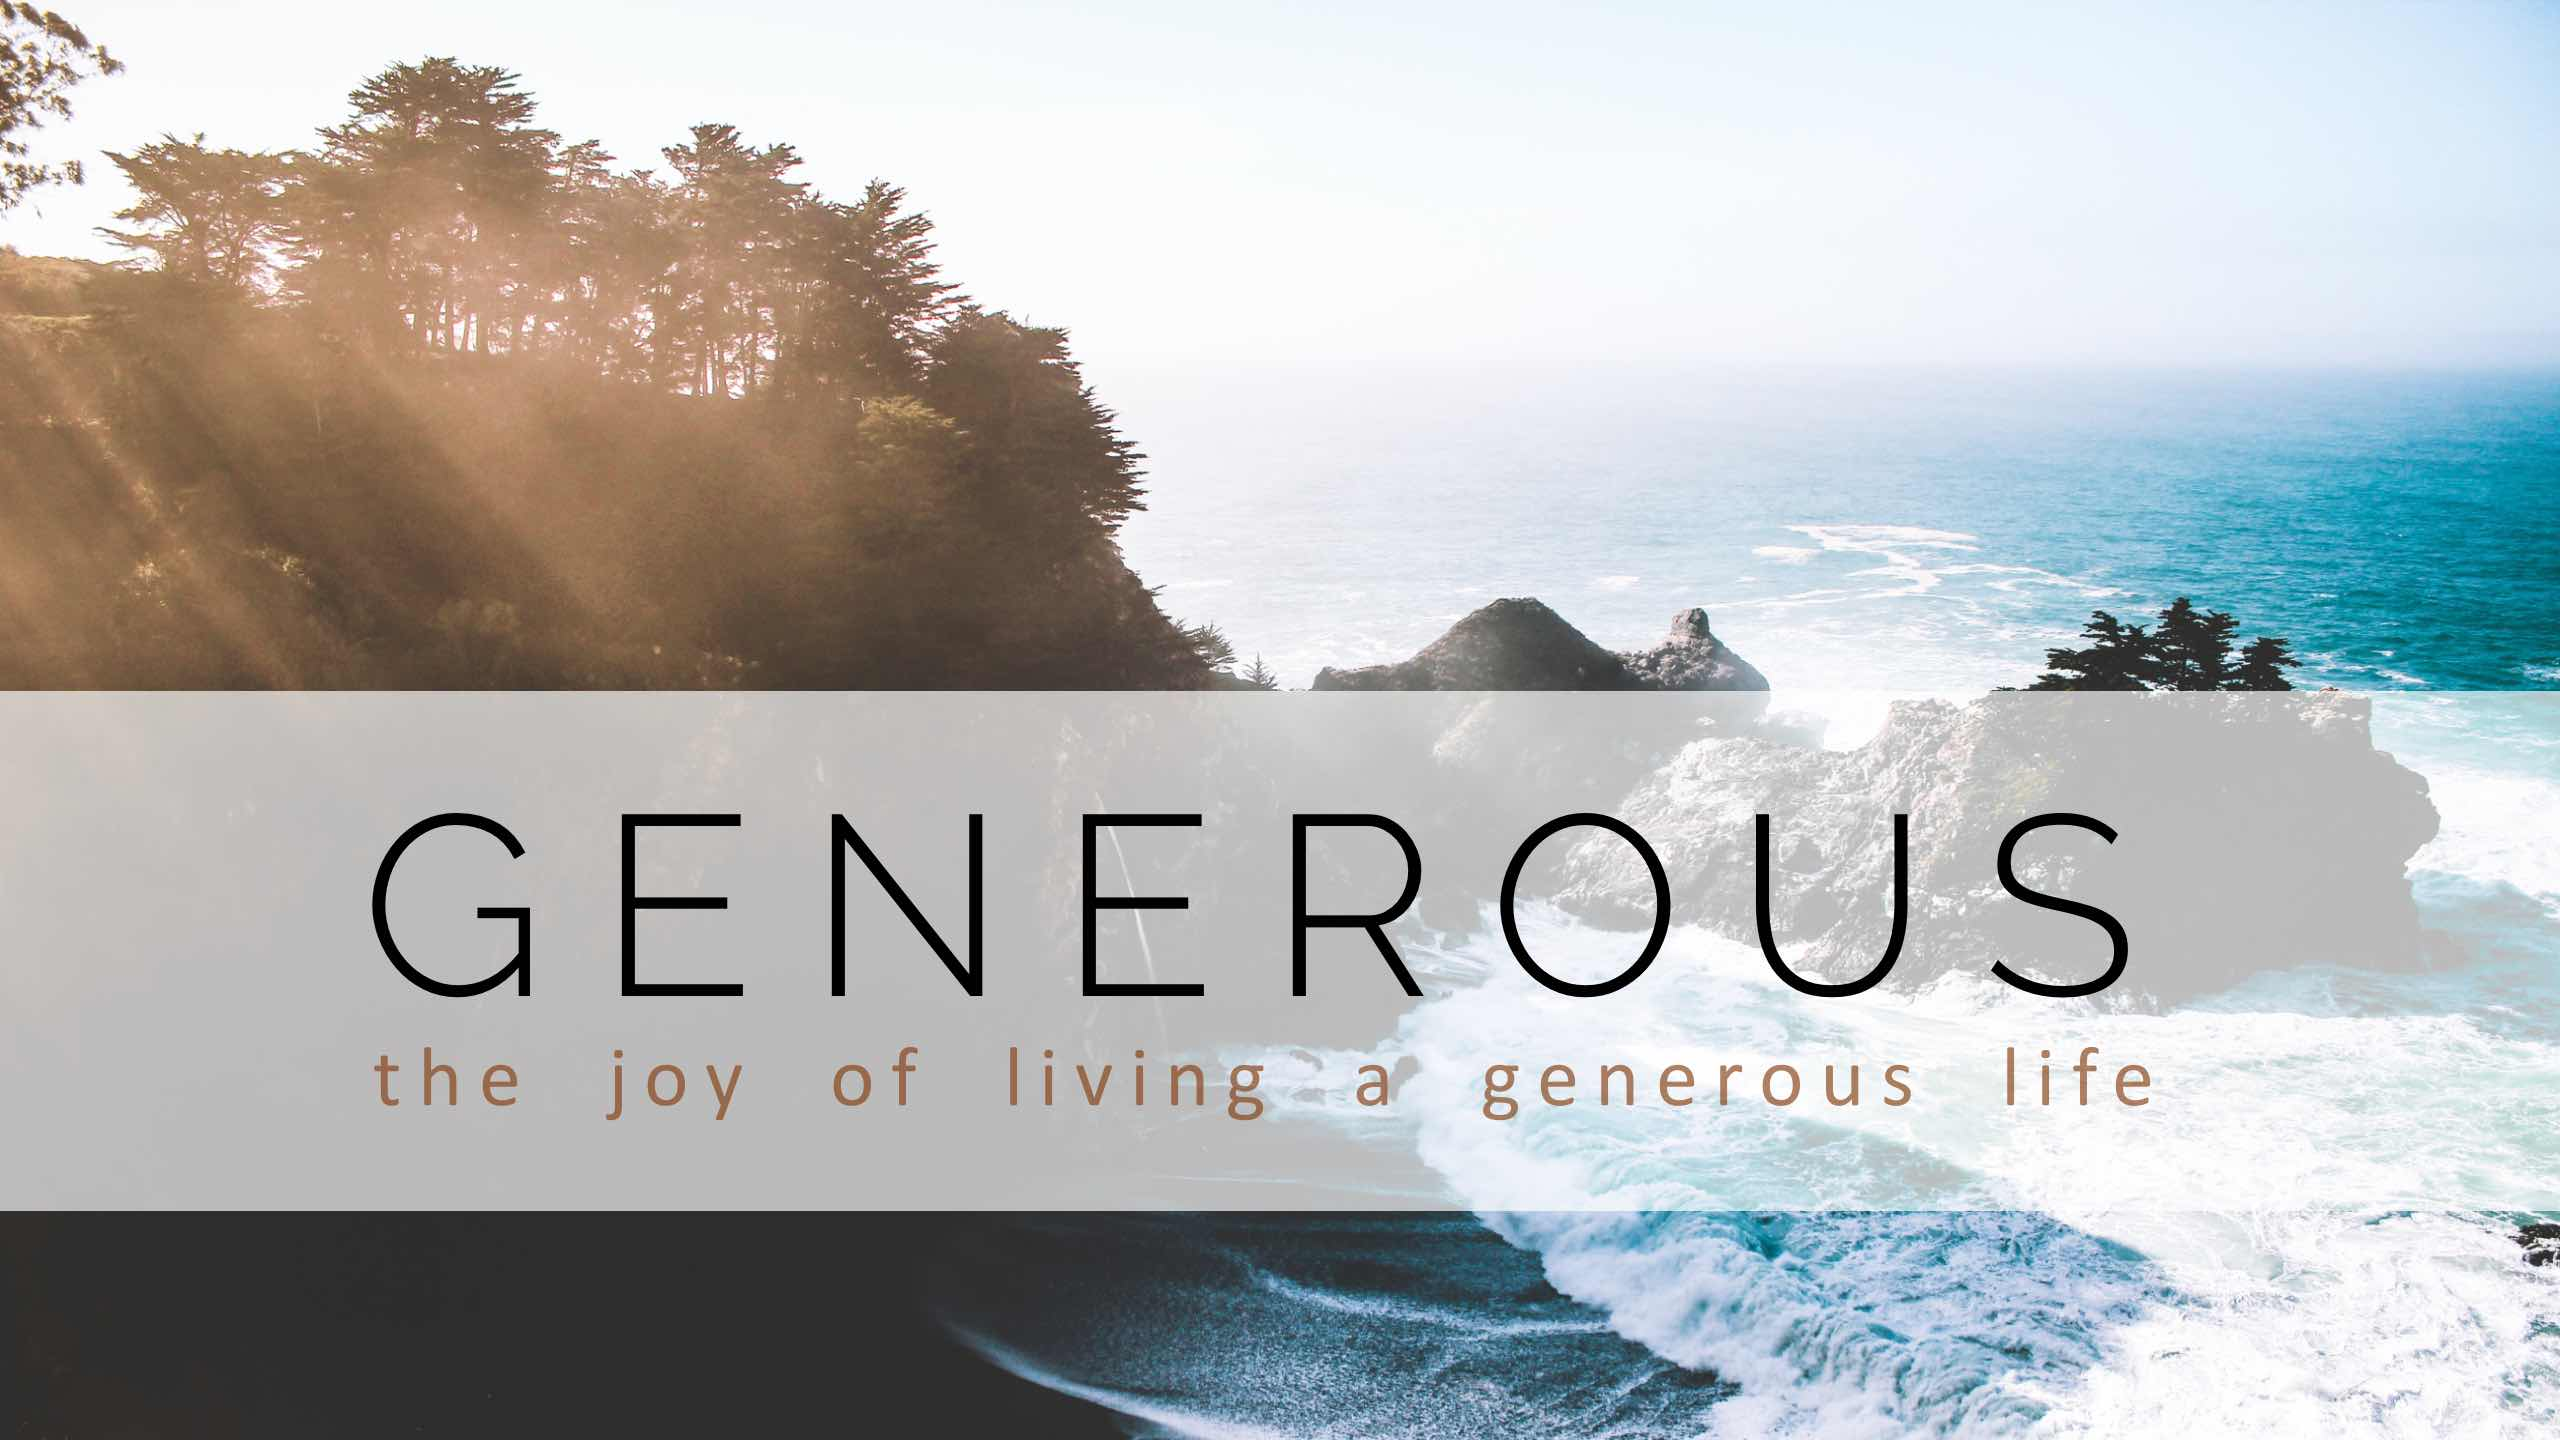 The mission church north county generous life sermon for Generous living